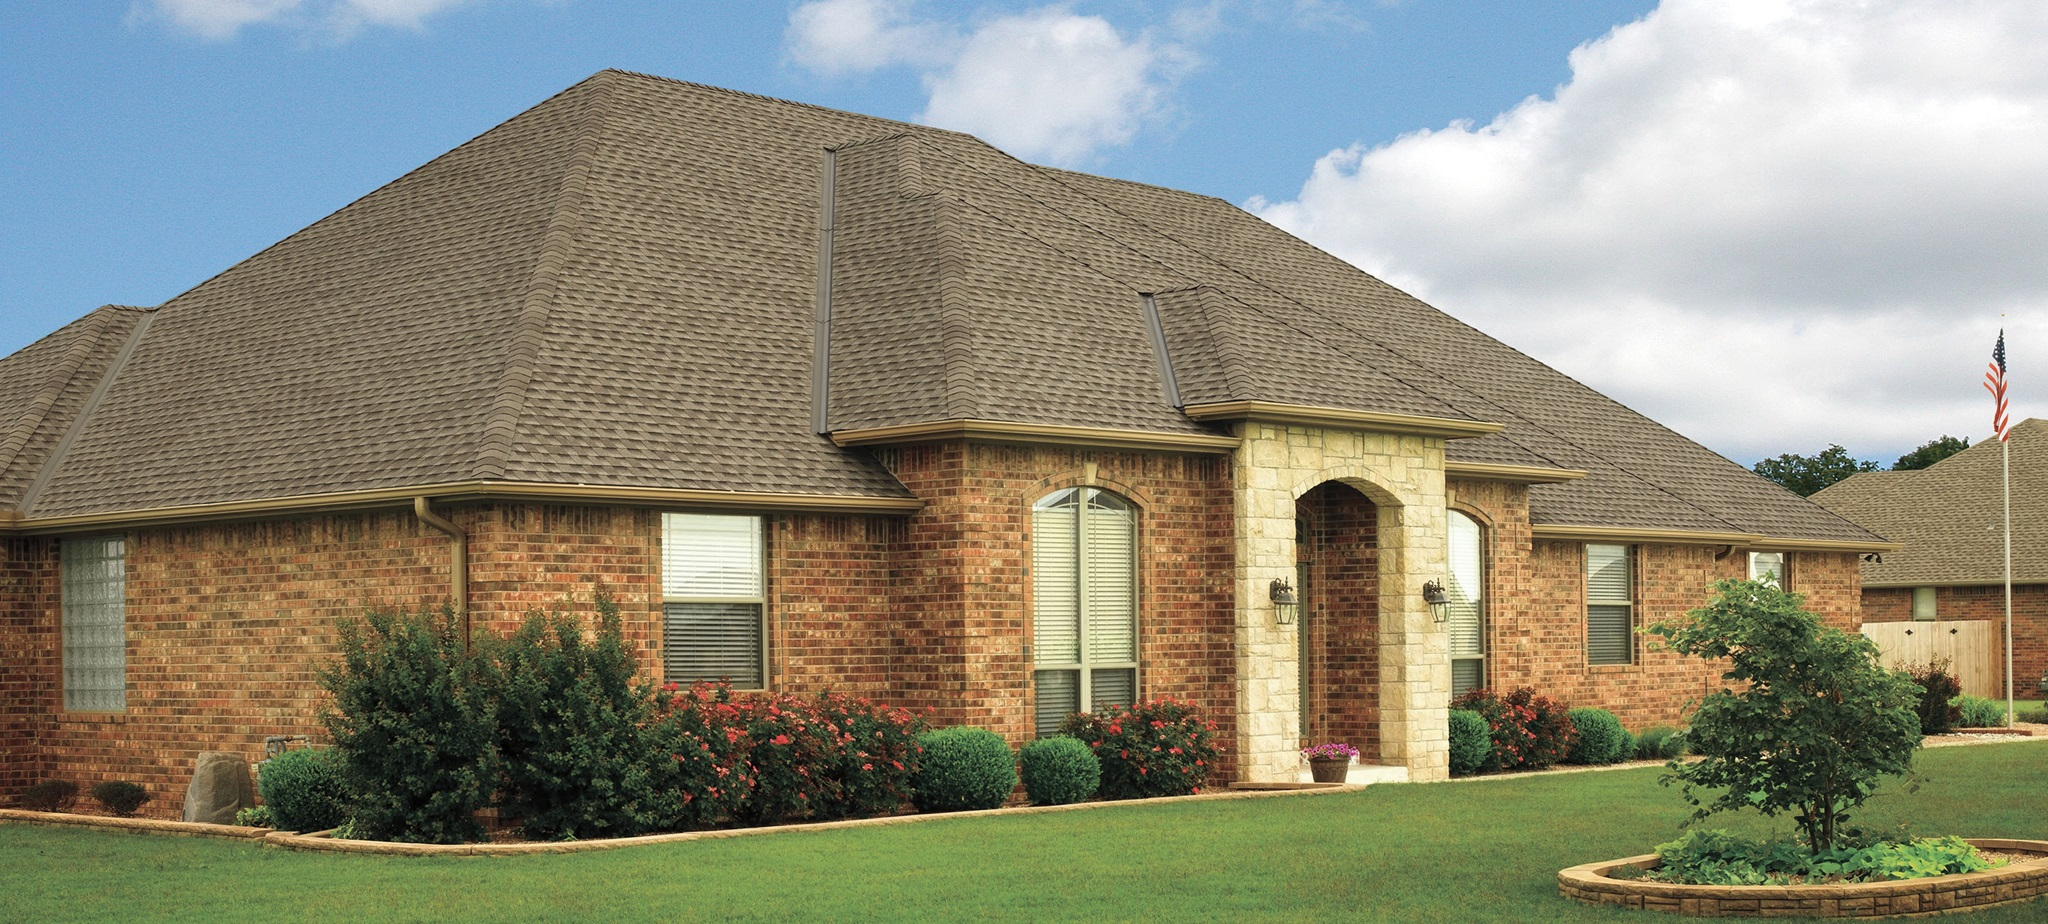 GAF Roofing Timberline Series from Century Building Materials